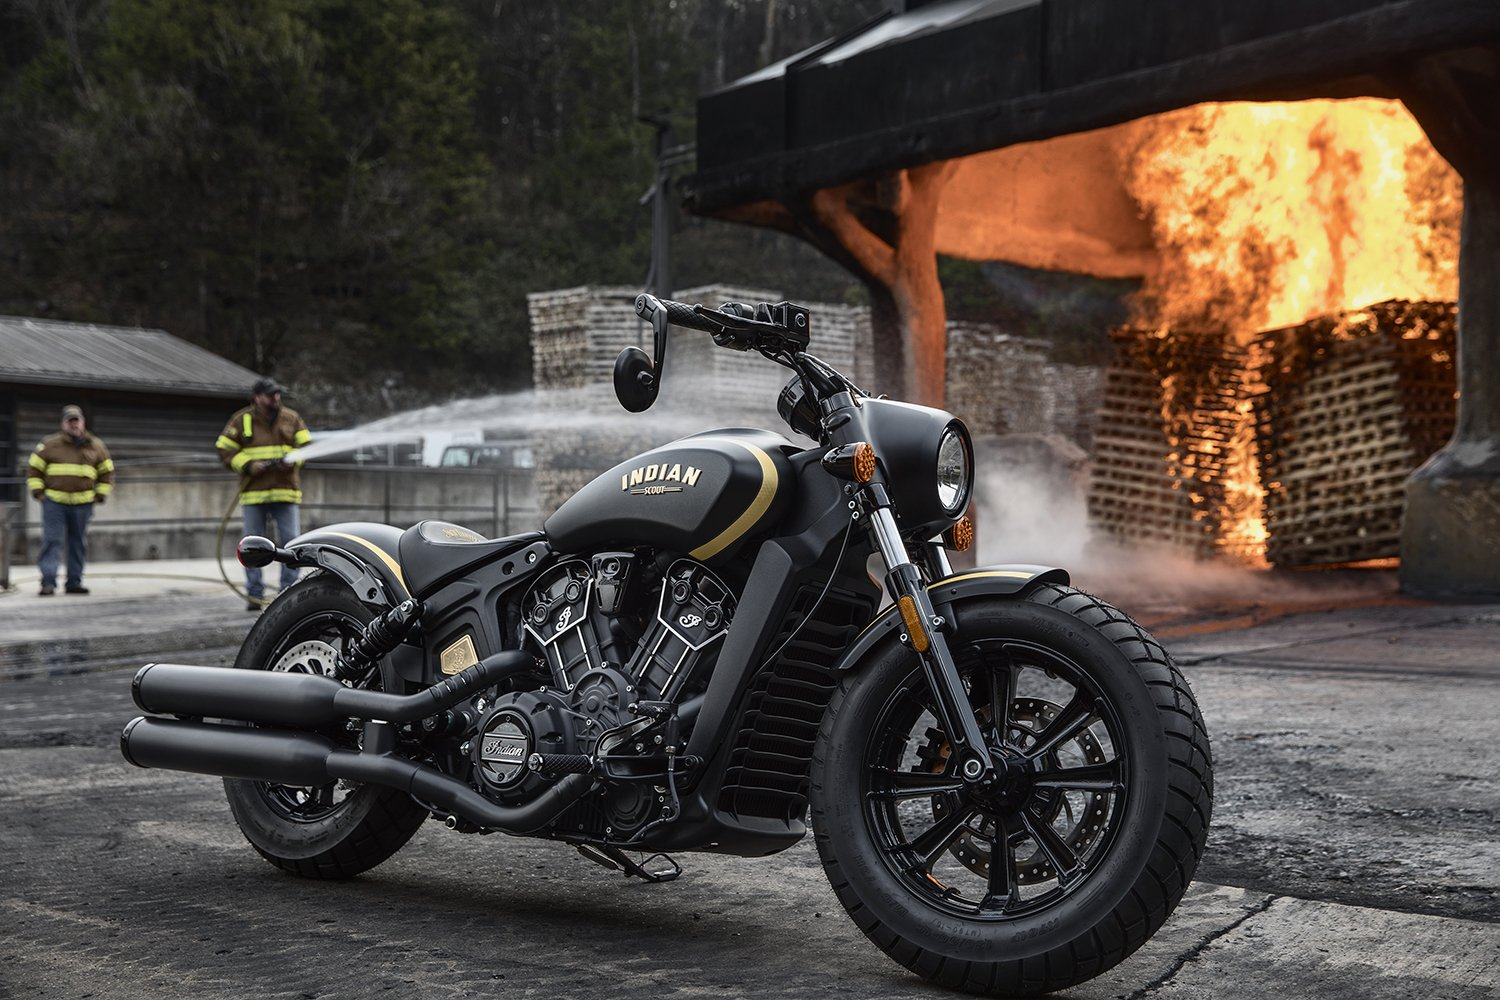 Jack Daniel's collaborates with Indian Motorcycles to create a limited edition Scout Bobber -